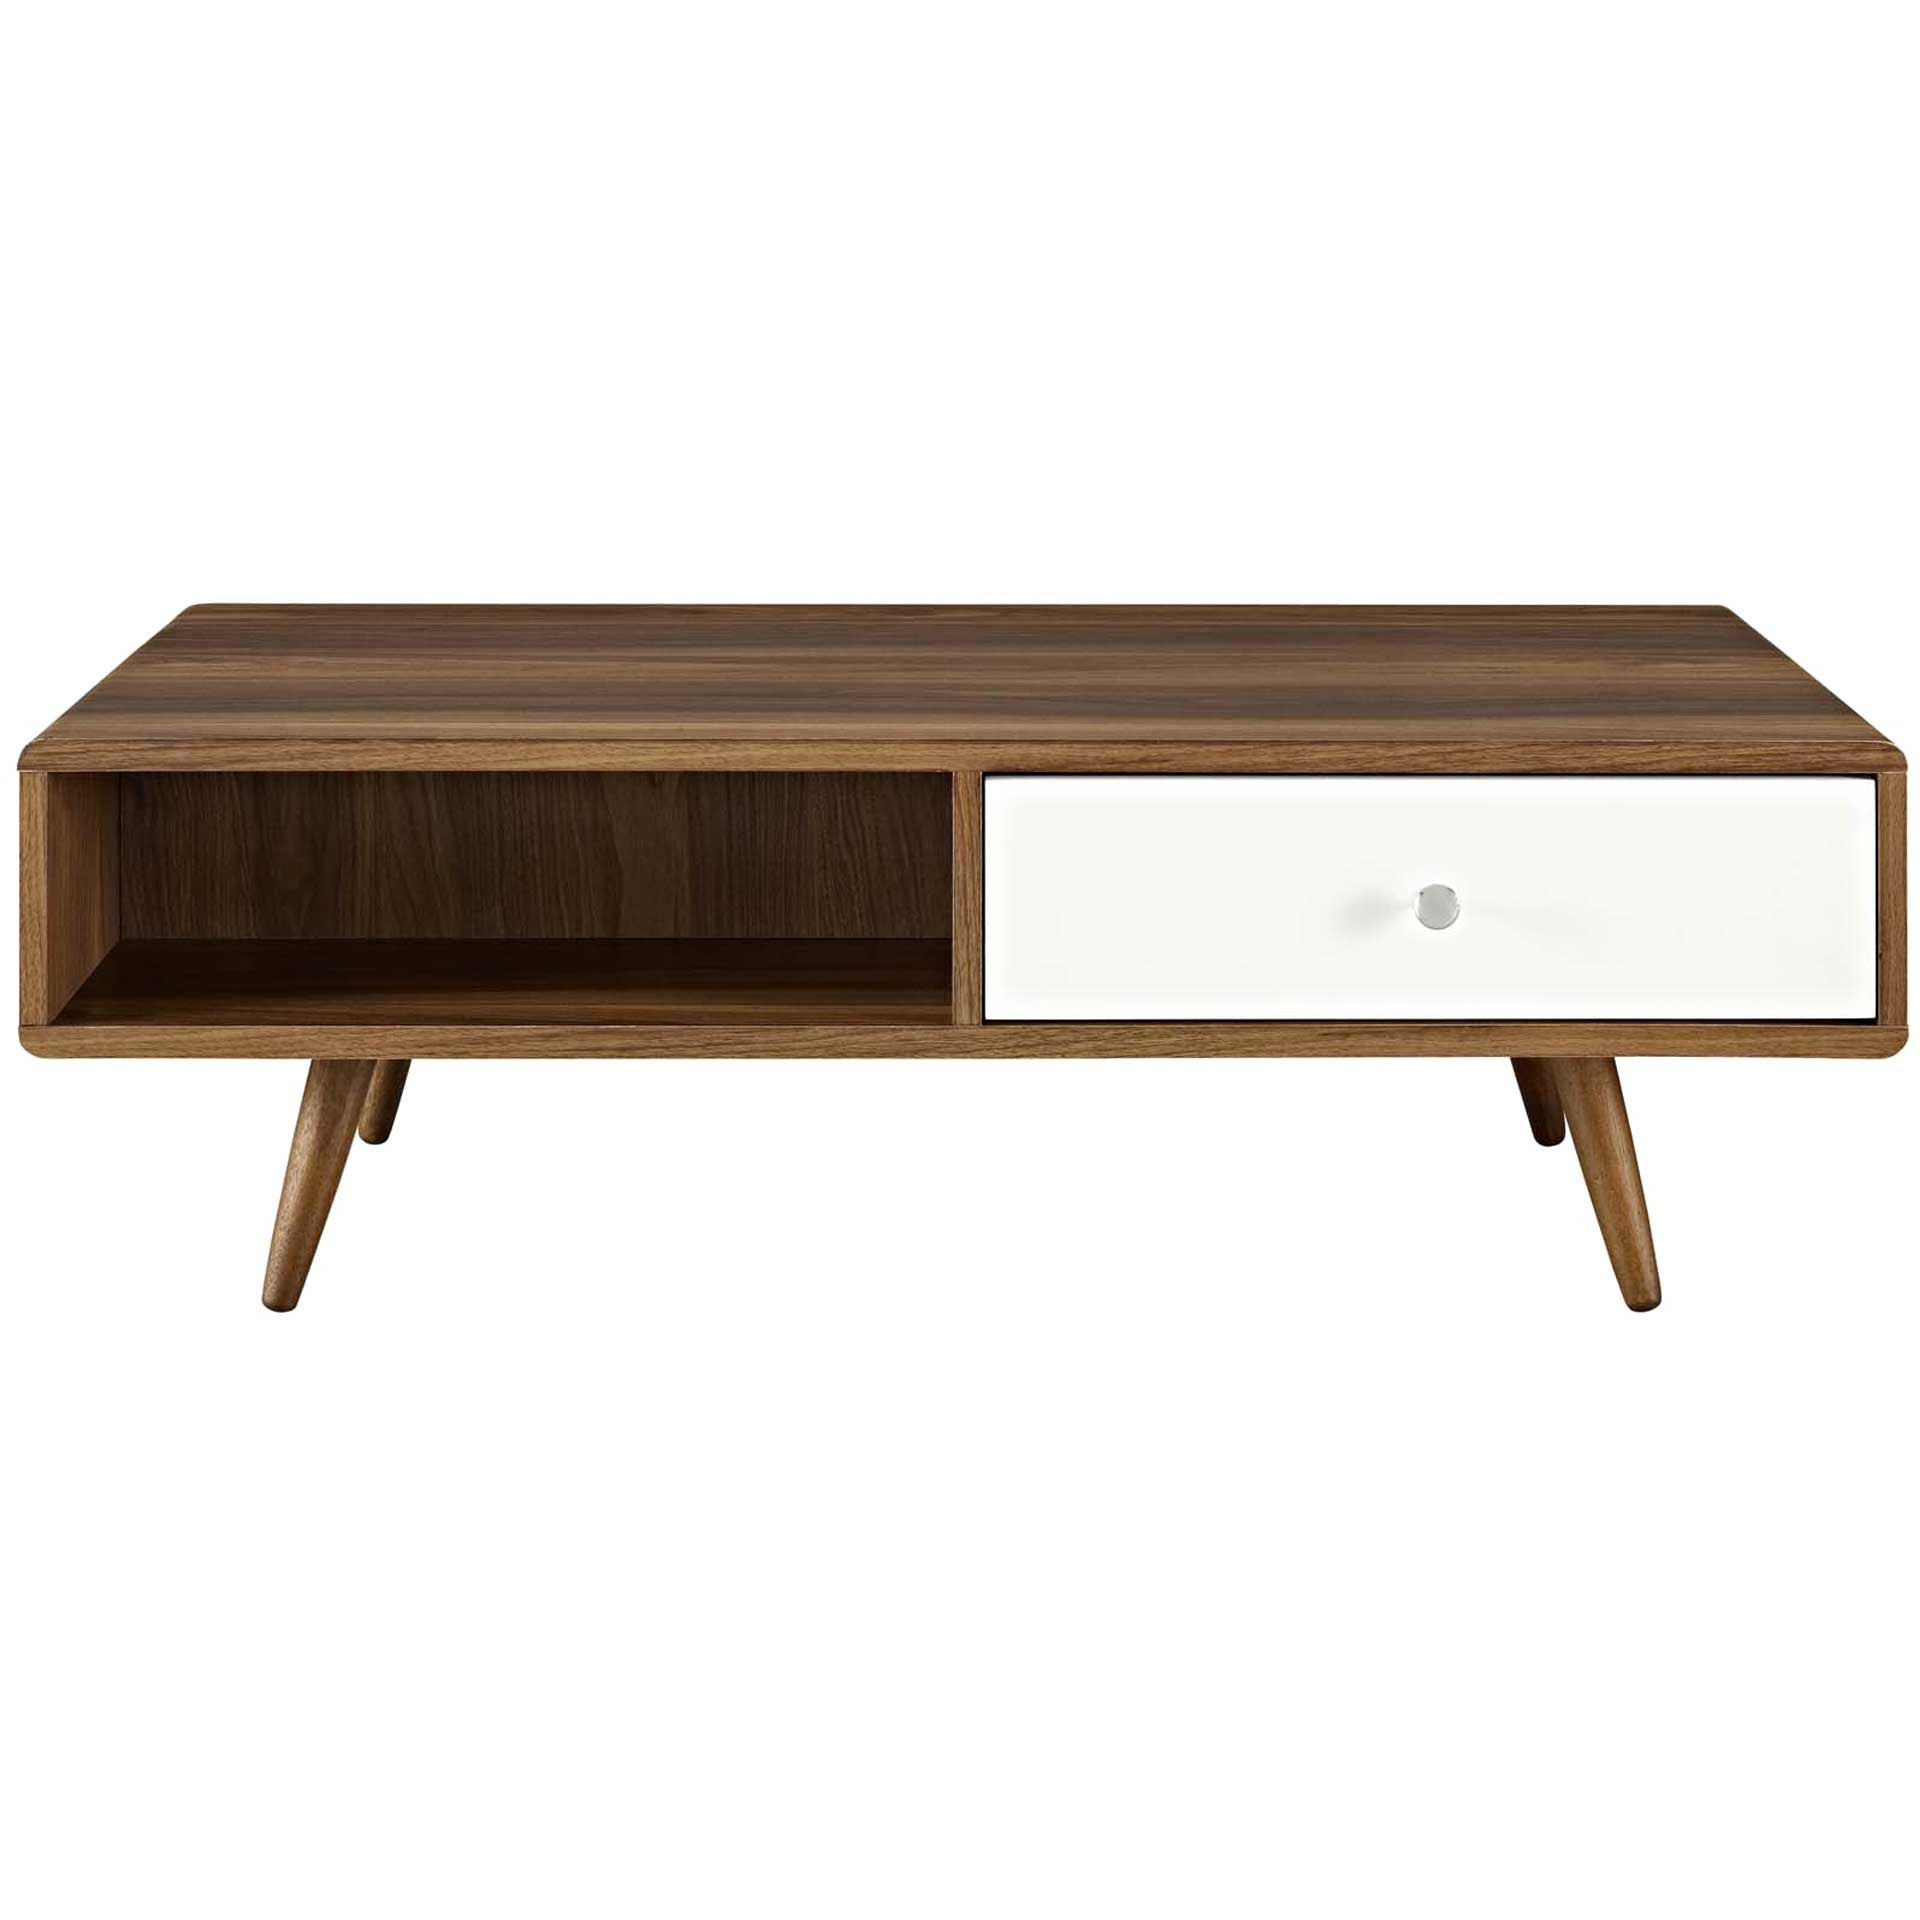 Tiffin Coffee Table Walnut/White